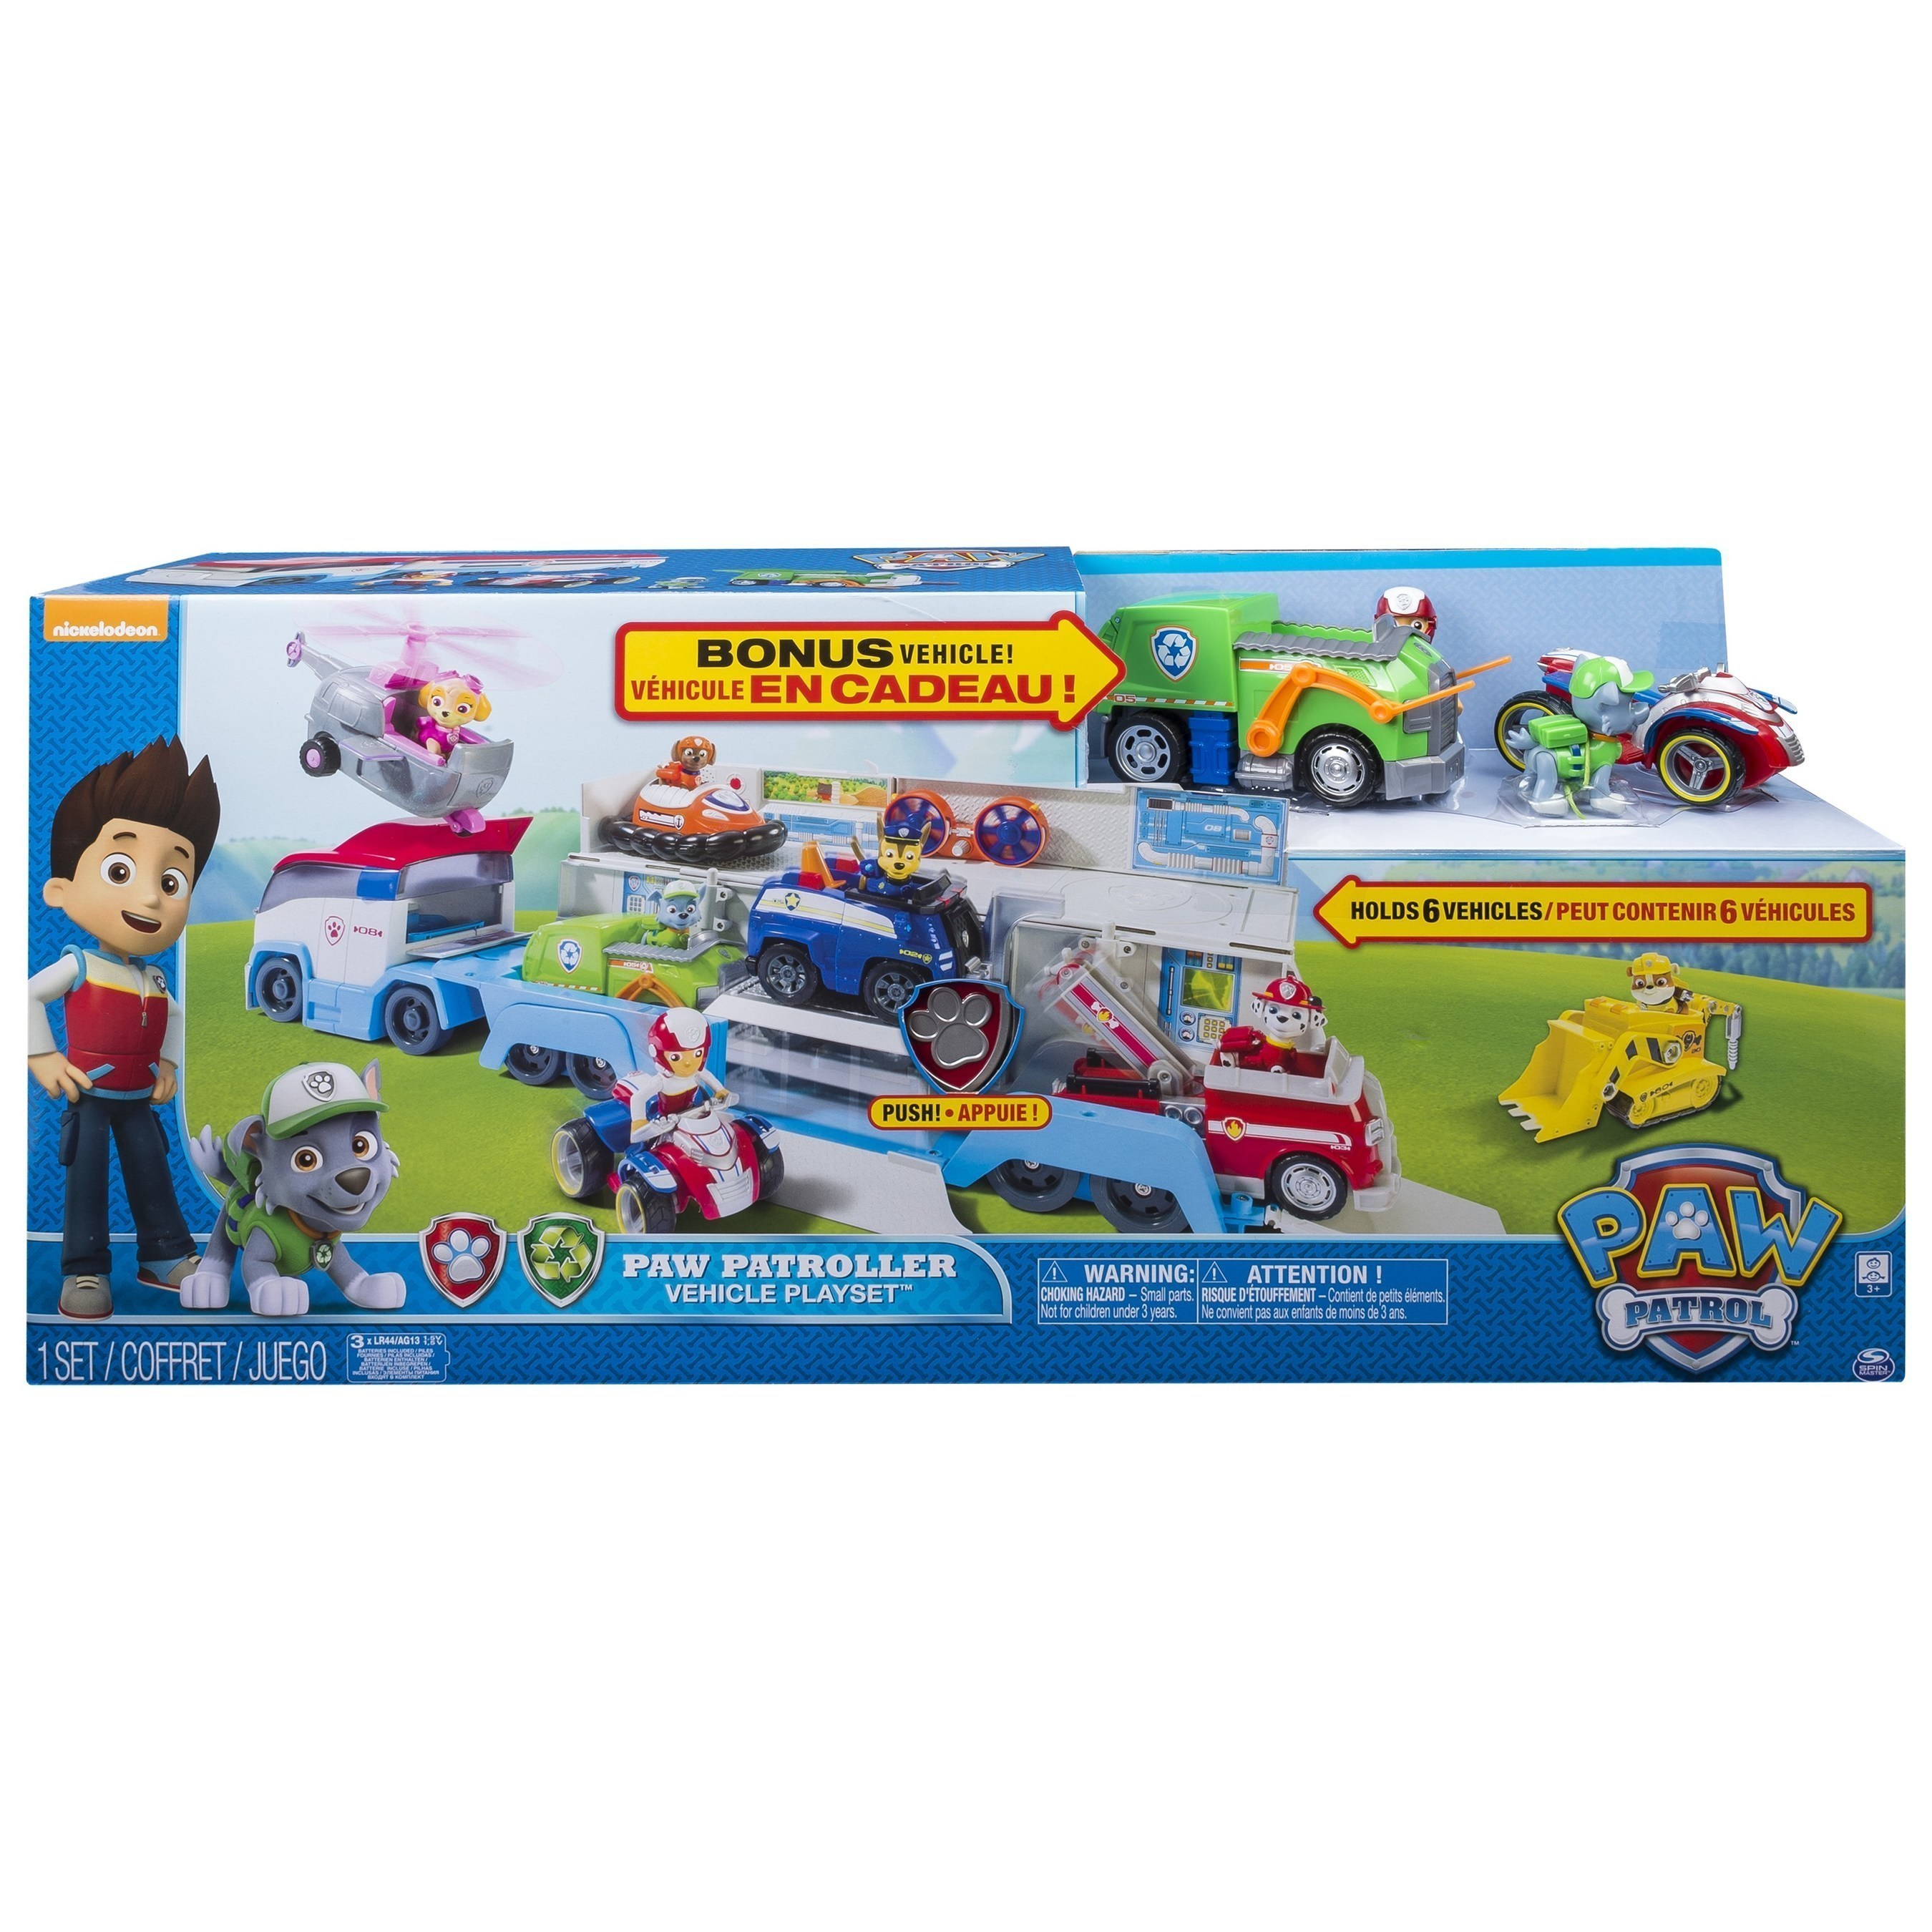 PAW Patroller Vehicle Playset with BONUS Vehicle, available at BJ's Clubs and BJs.com.